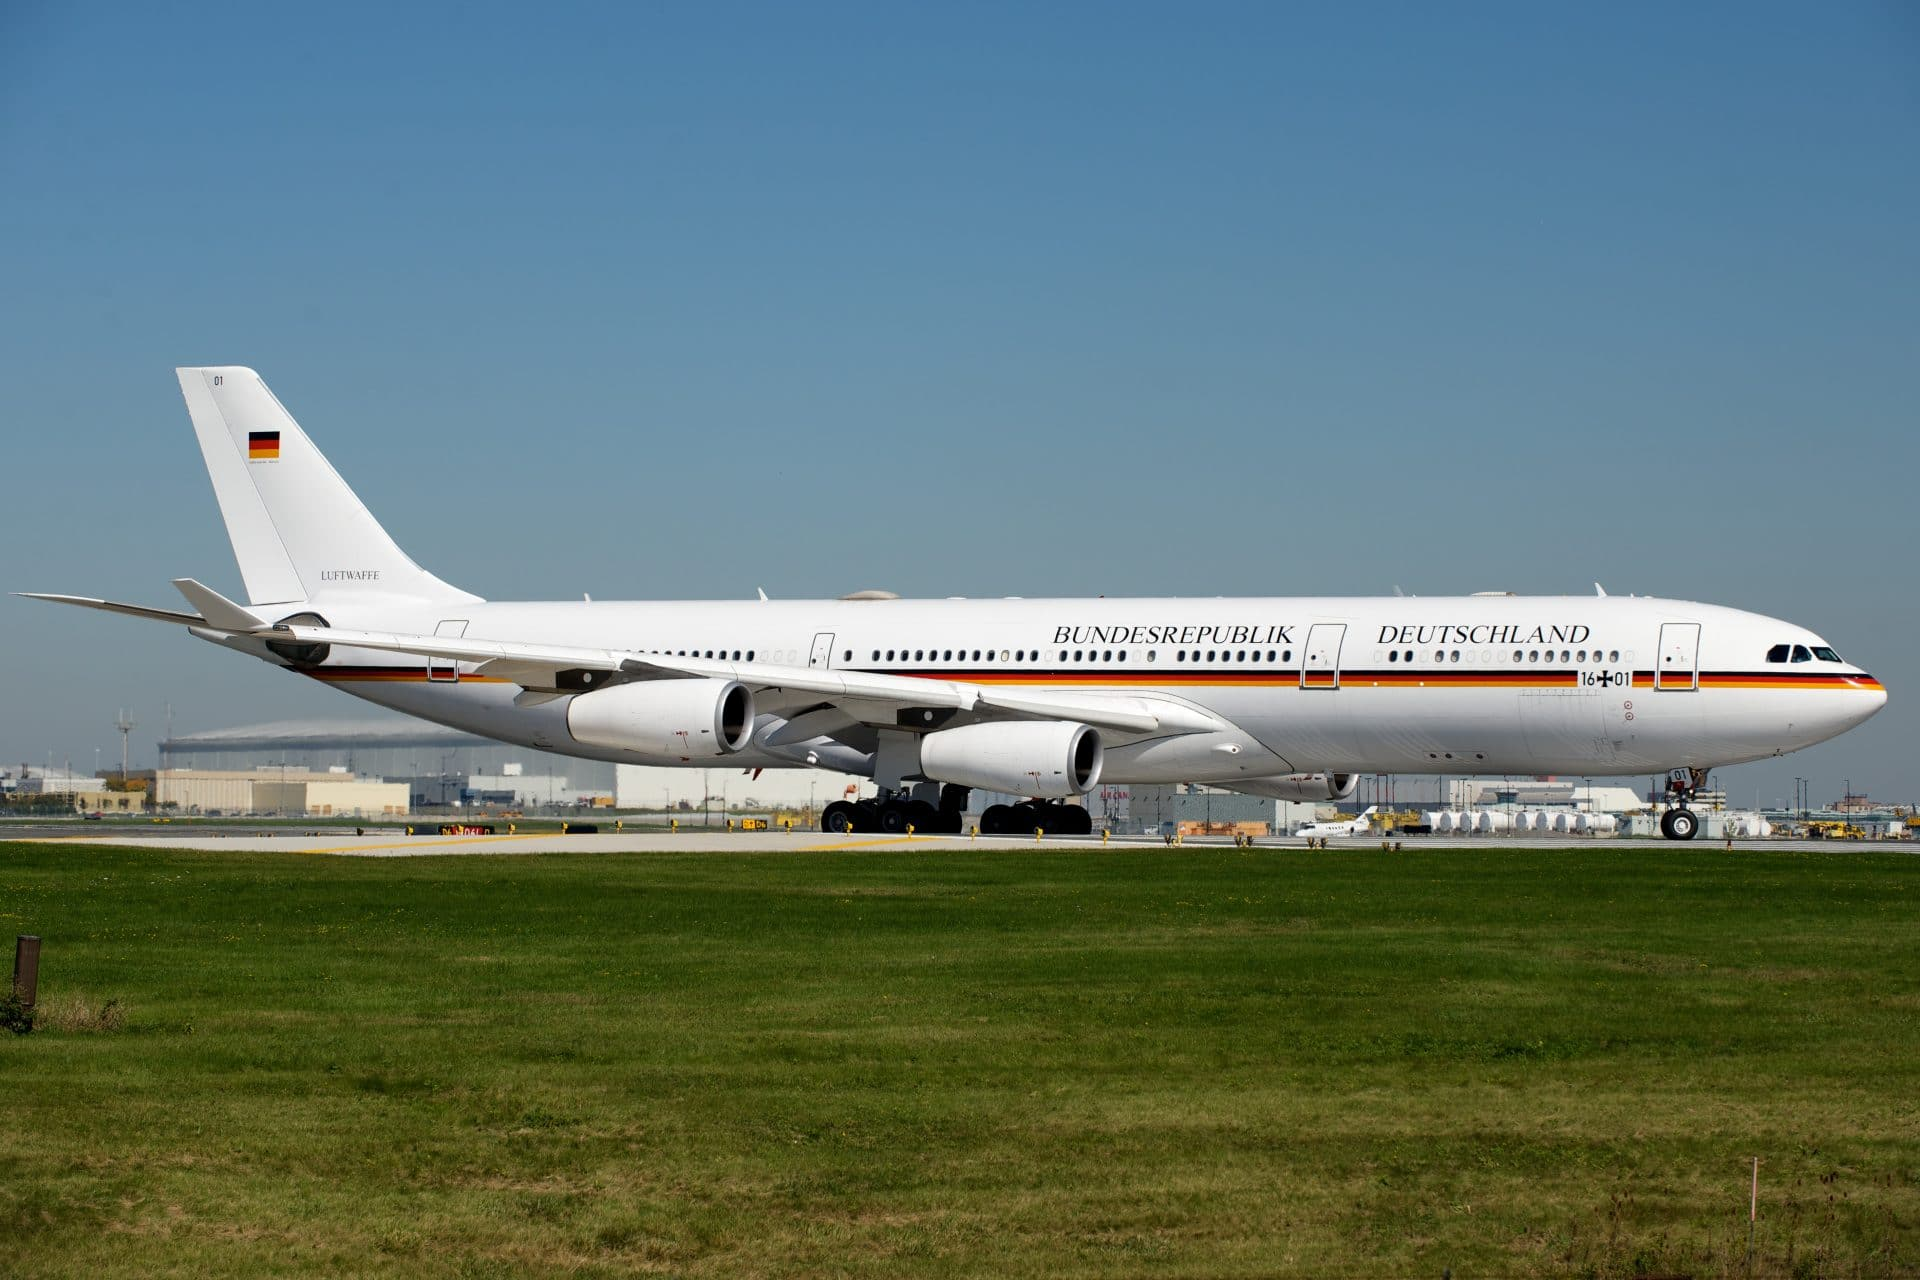 German Air Force Airbus A340 with chancellor Angela Merkel on board